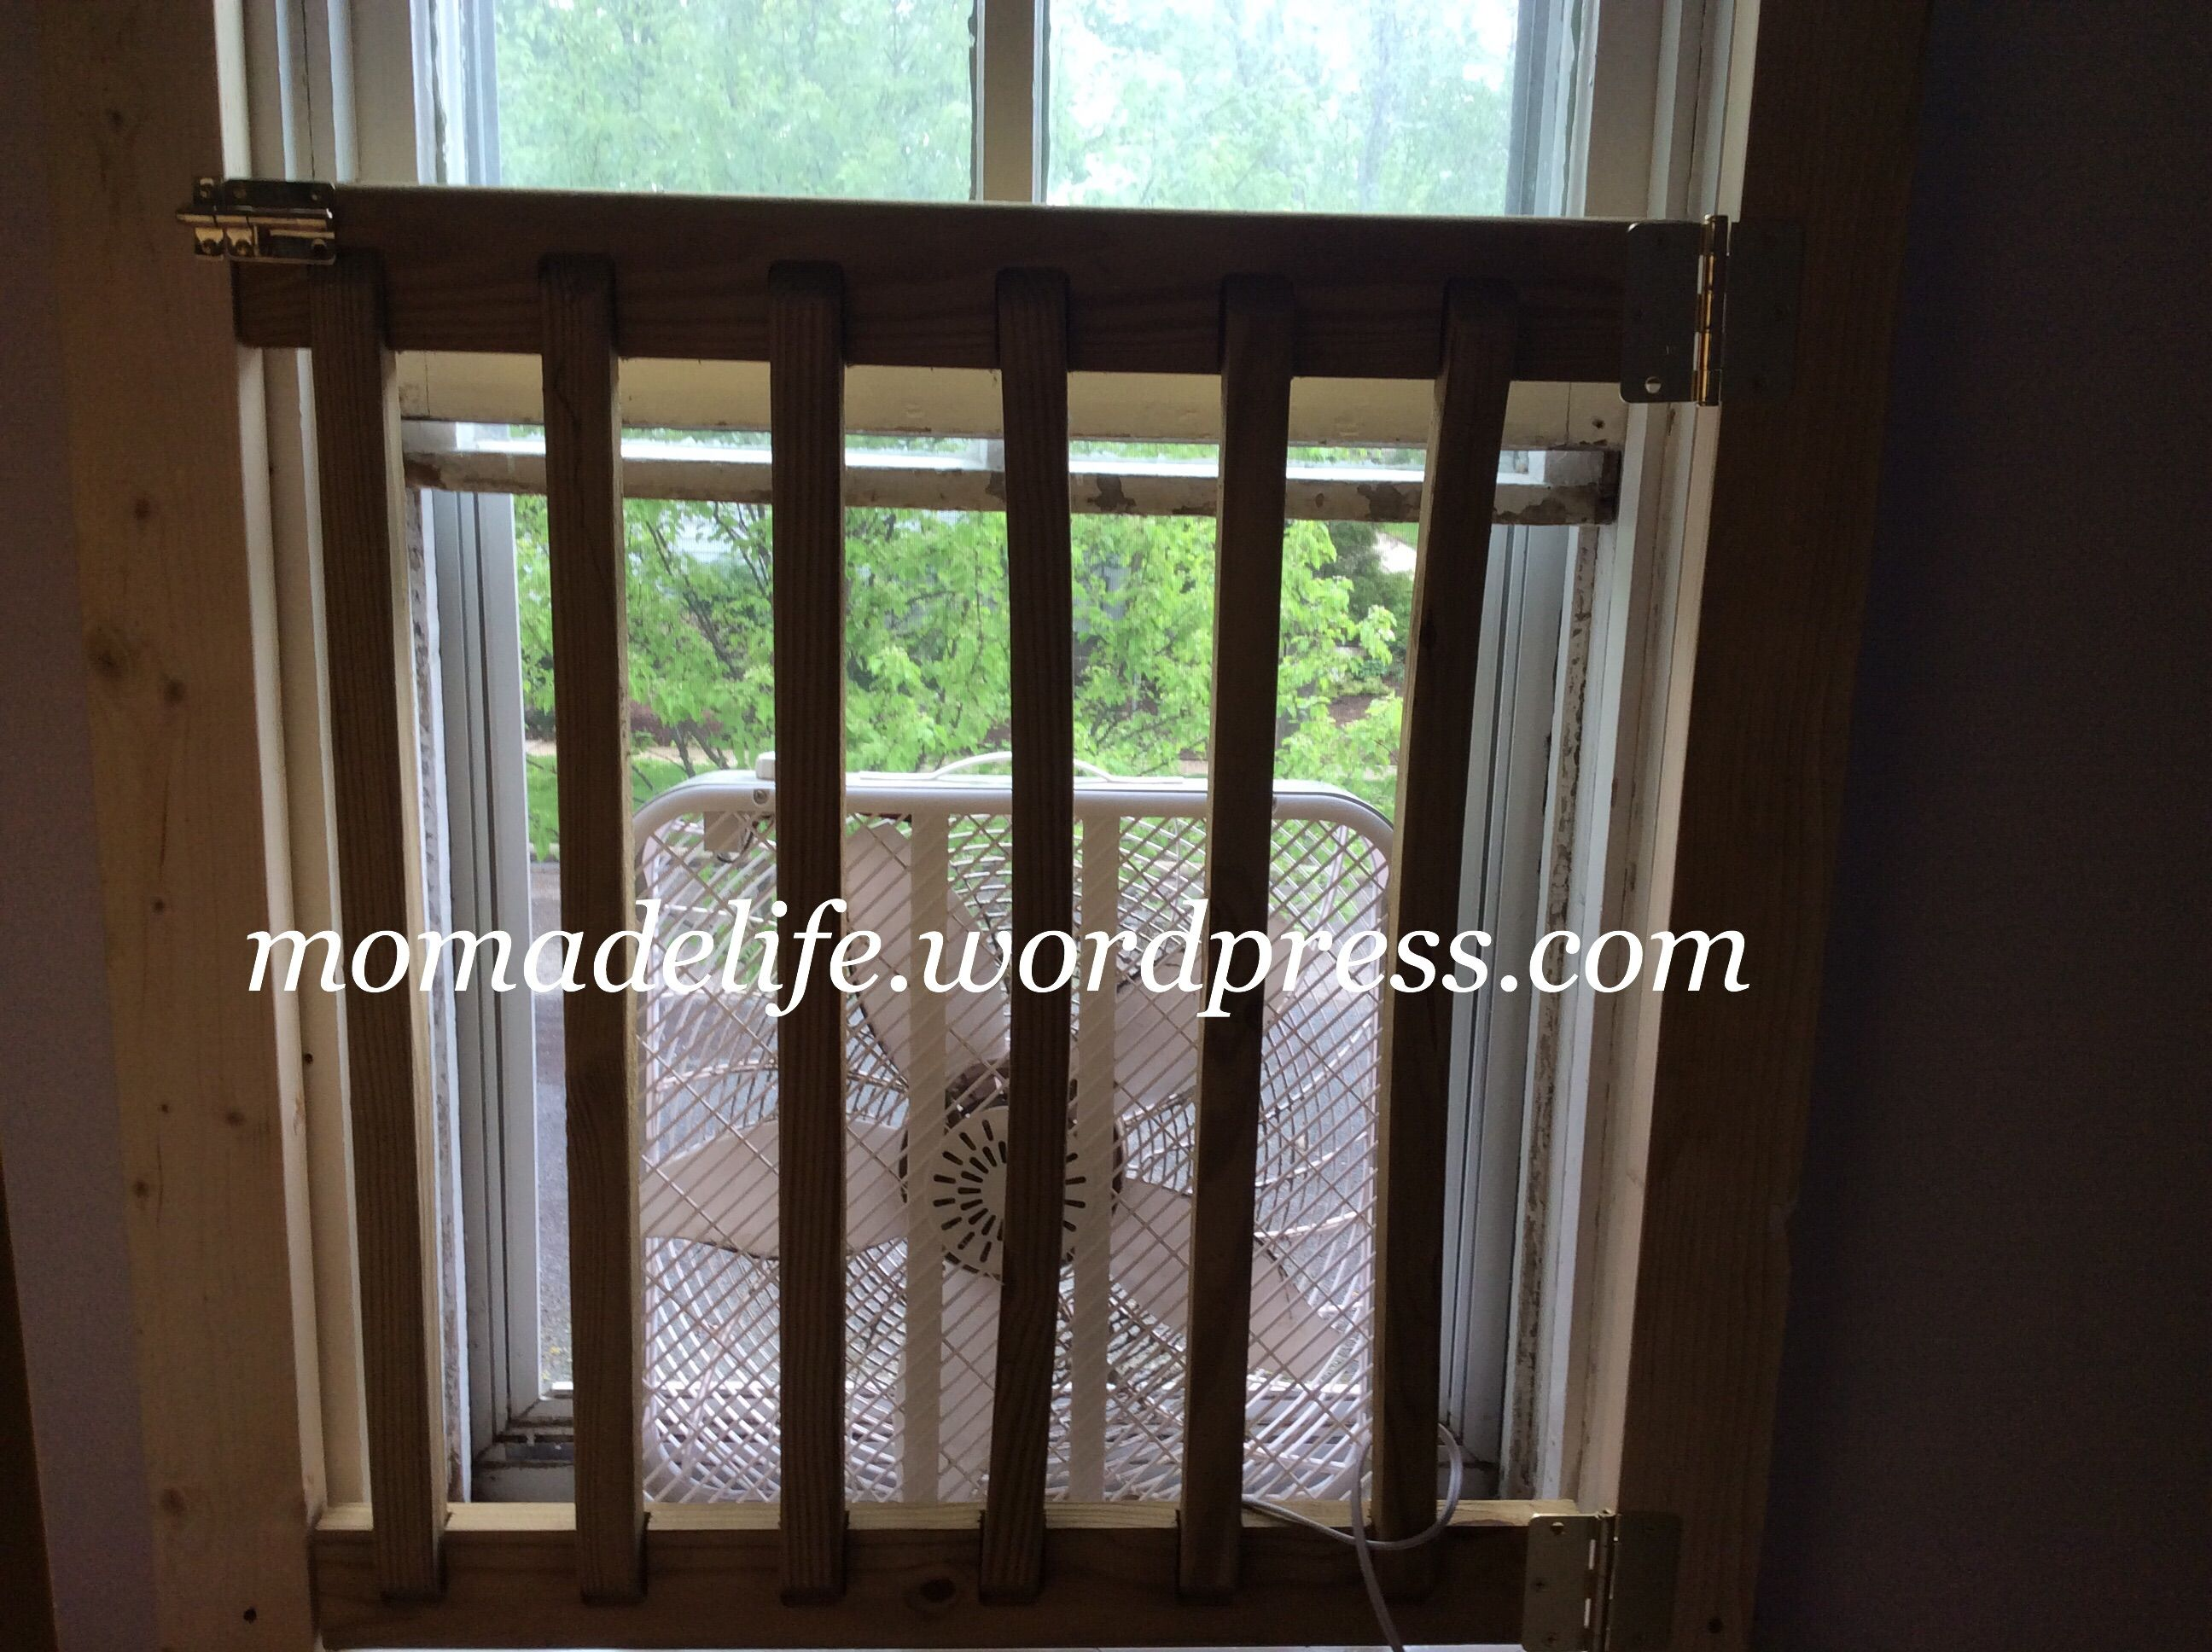 Diy Window Safety Gate For An Autistic Child On Momadelife Wordpress Com And More Creations On Facebook At Momadecreations Childproofing Window Safety Windows